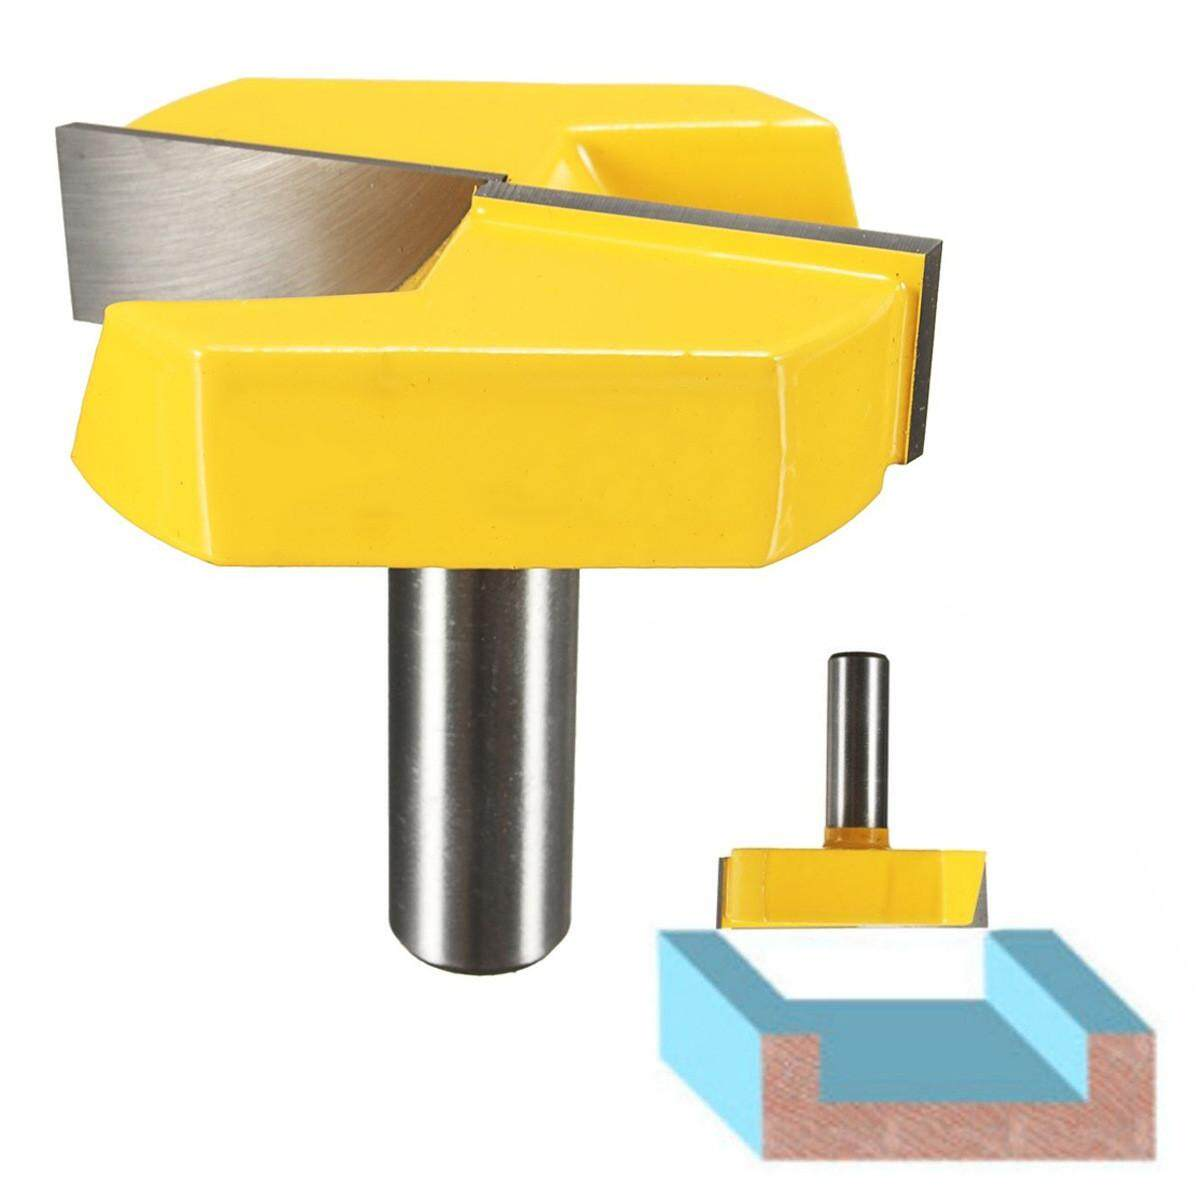 JY 1/2inch Shank Dia Bottom Cleaning Router Bit Woodworking Milling Cutter Tool